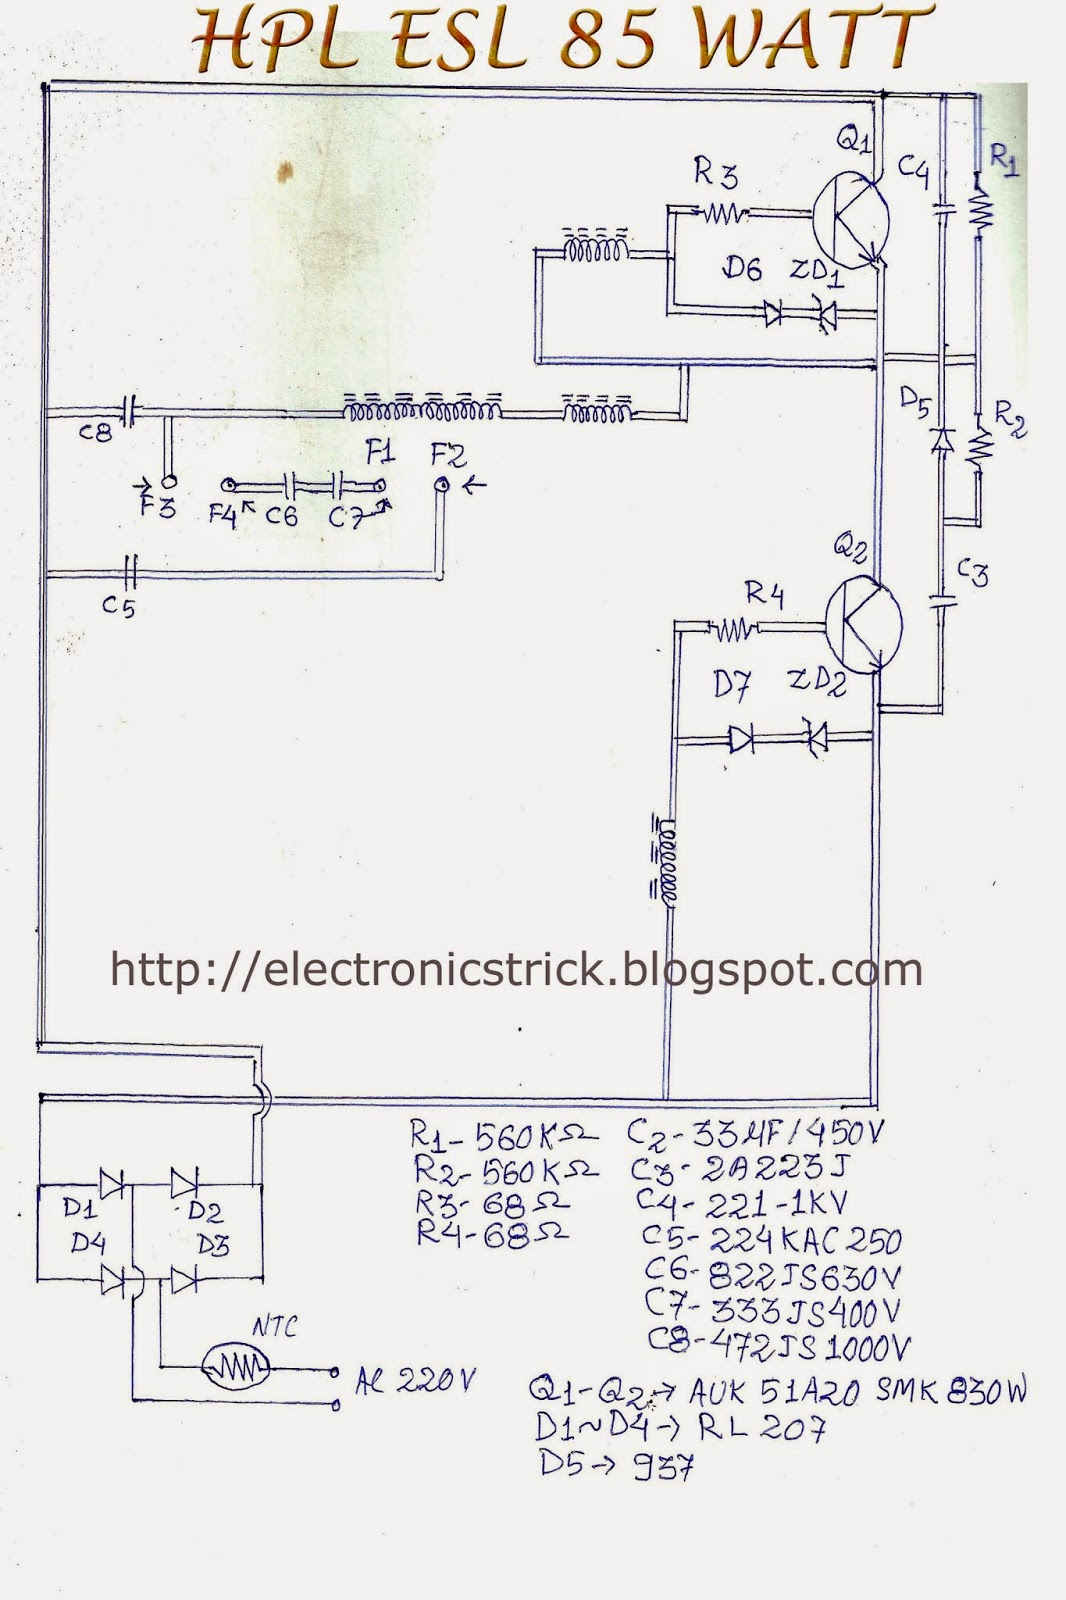 hight resolution of hcl esl 85 watt cfl bulb ckt diagram tips and trick electronic another cfl bulb circuit diagram with details